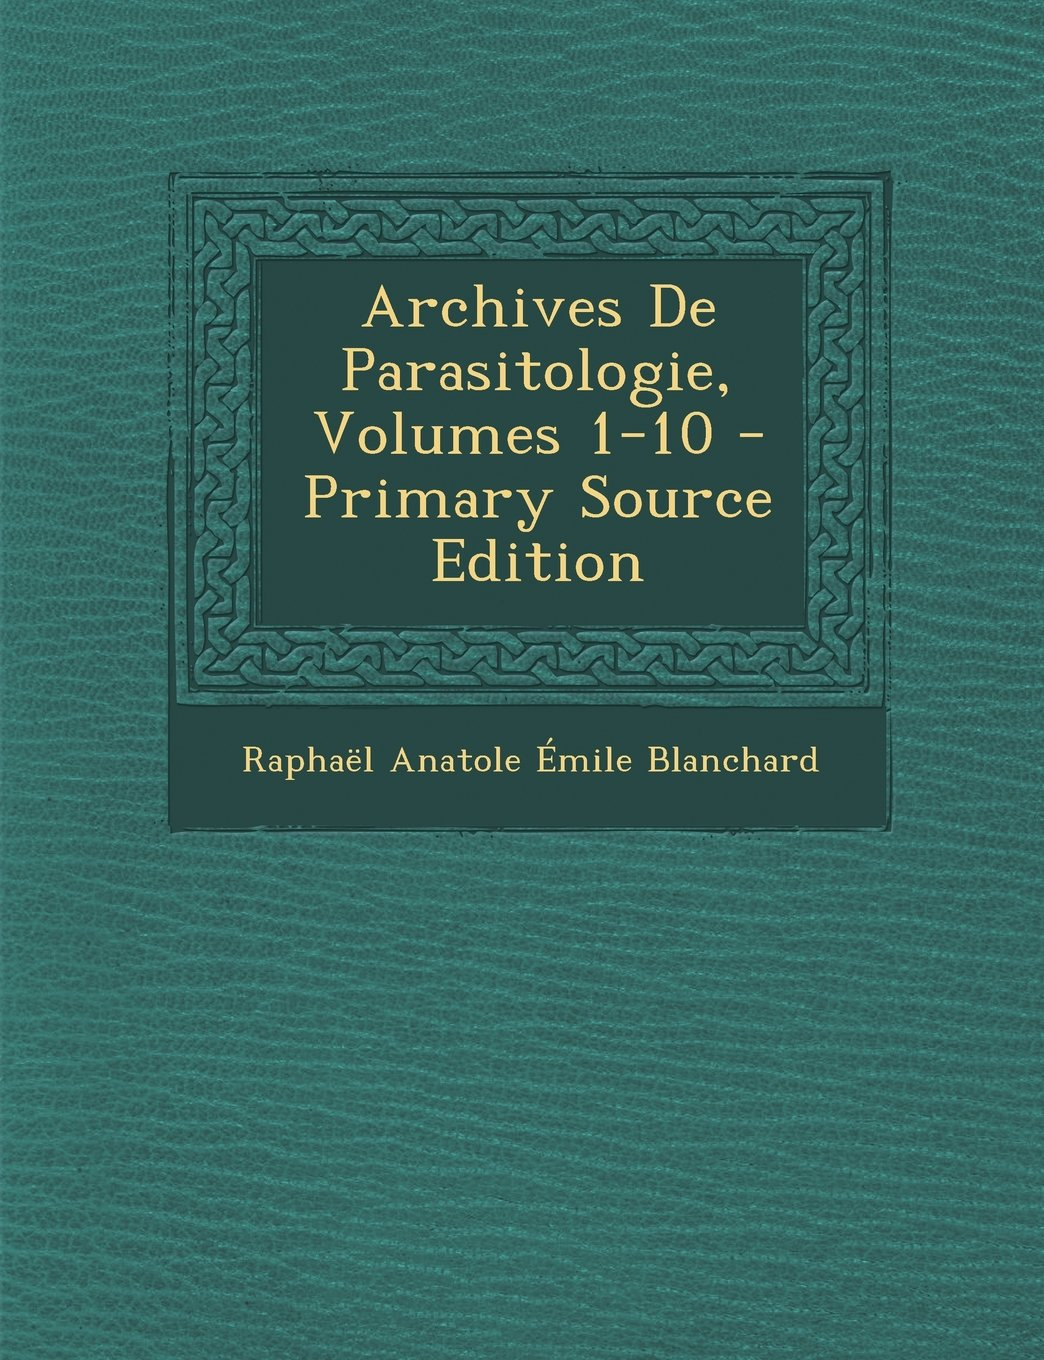 Archives de Parasitologie, Volumes 1-10 (French Edition) pdf epub